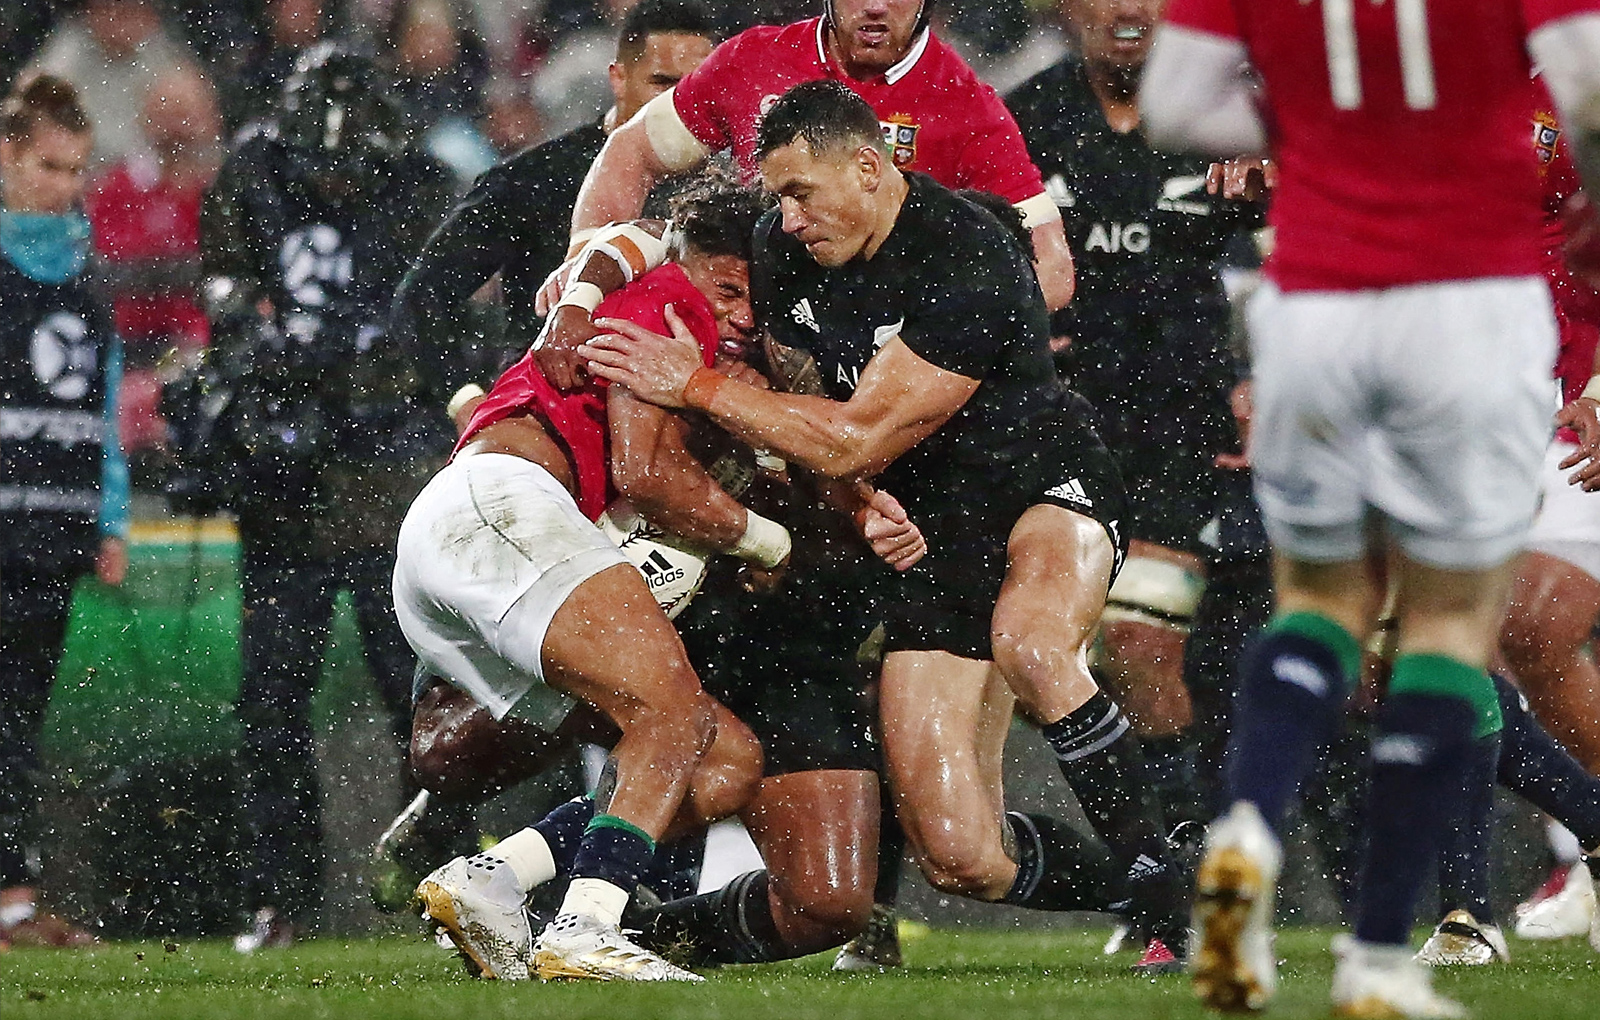 Match Analysis: All Blacks v Lions - Second Test